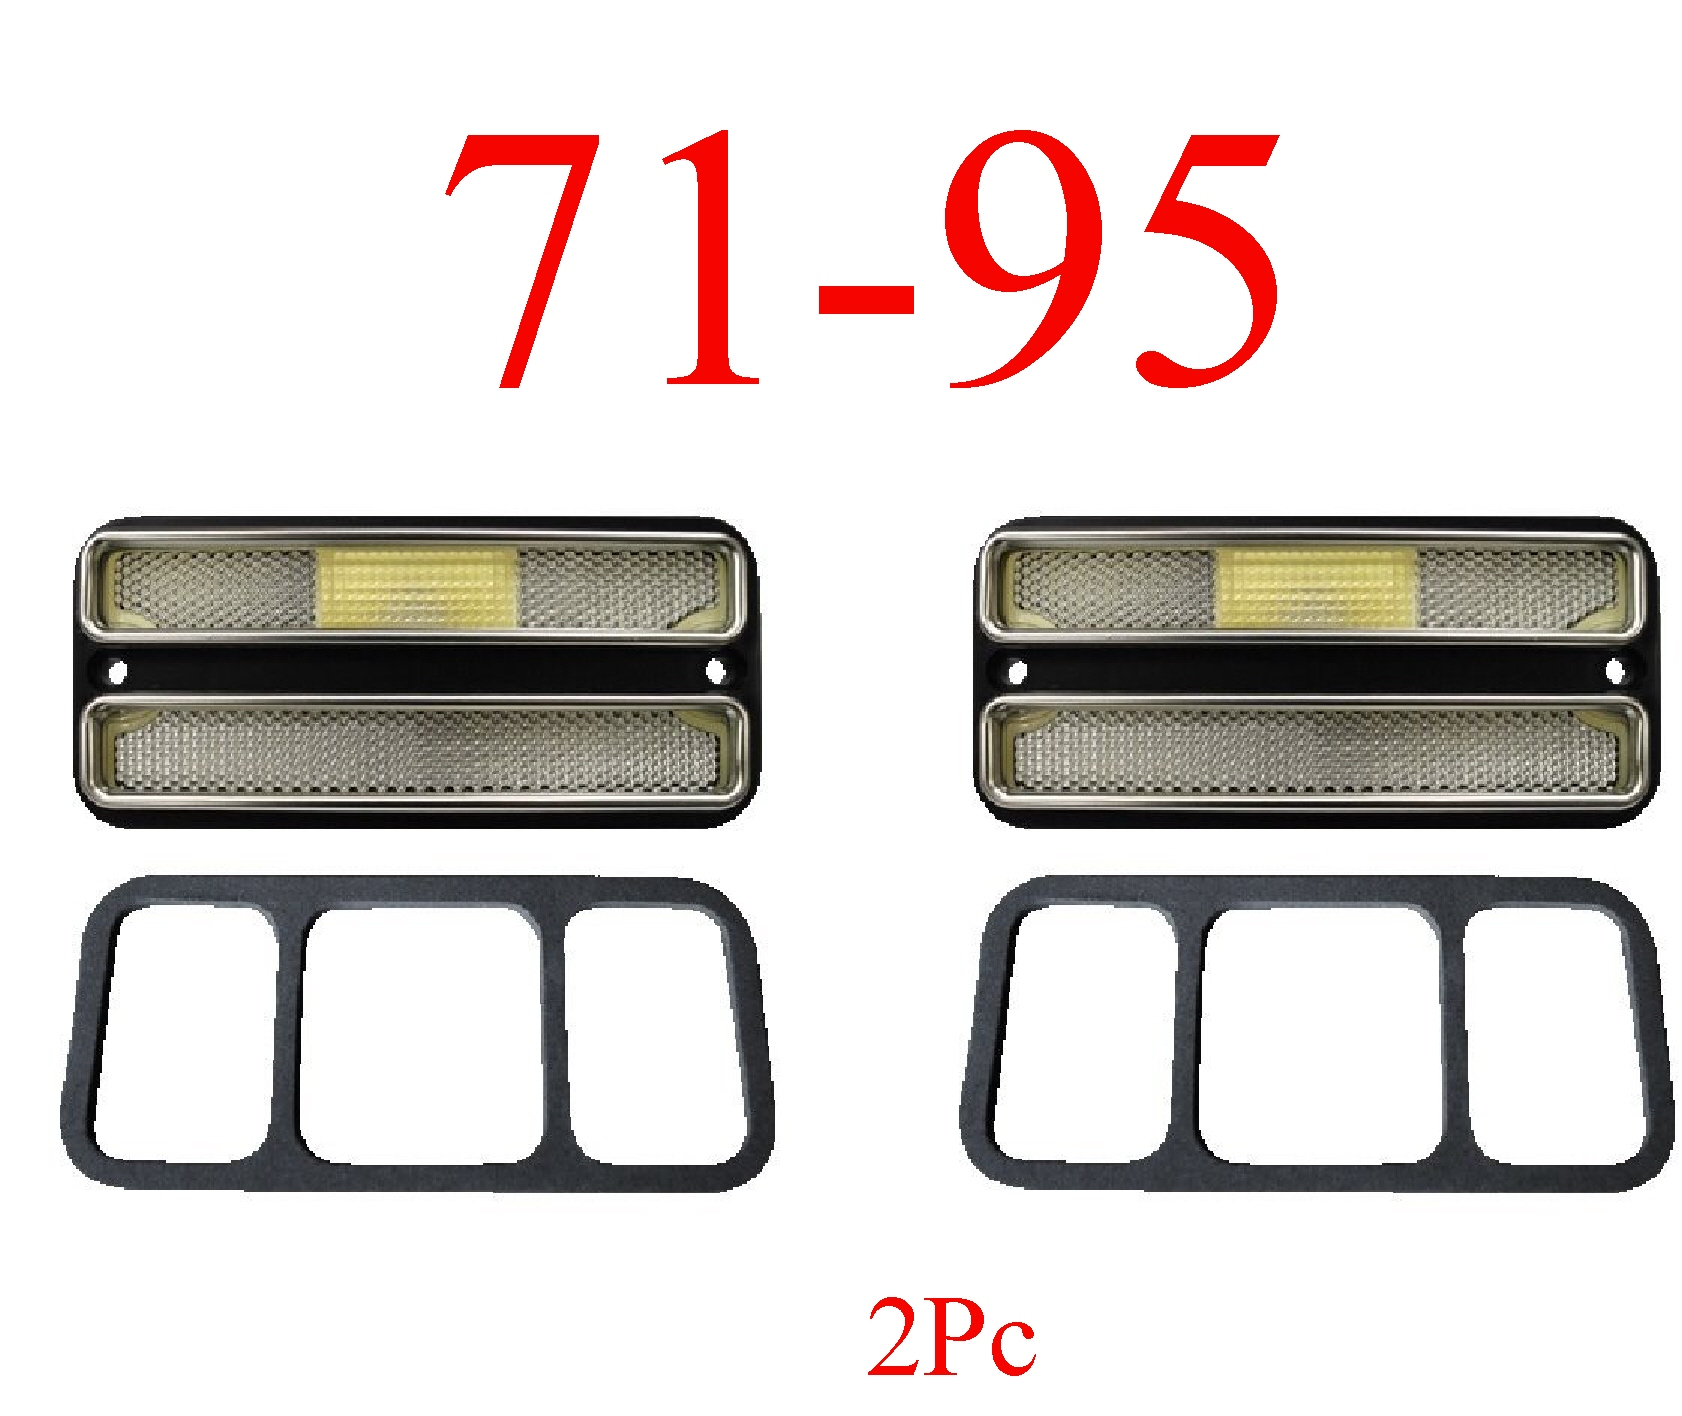 71 95 Chevy Van 2Pc Deluxe Rear Clear Side Lights